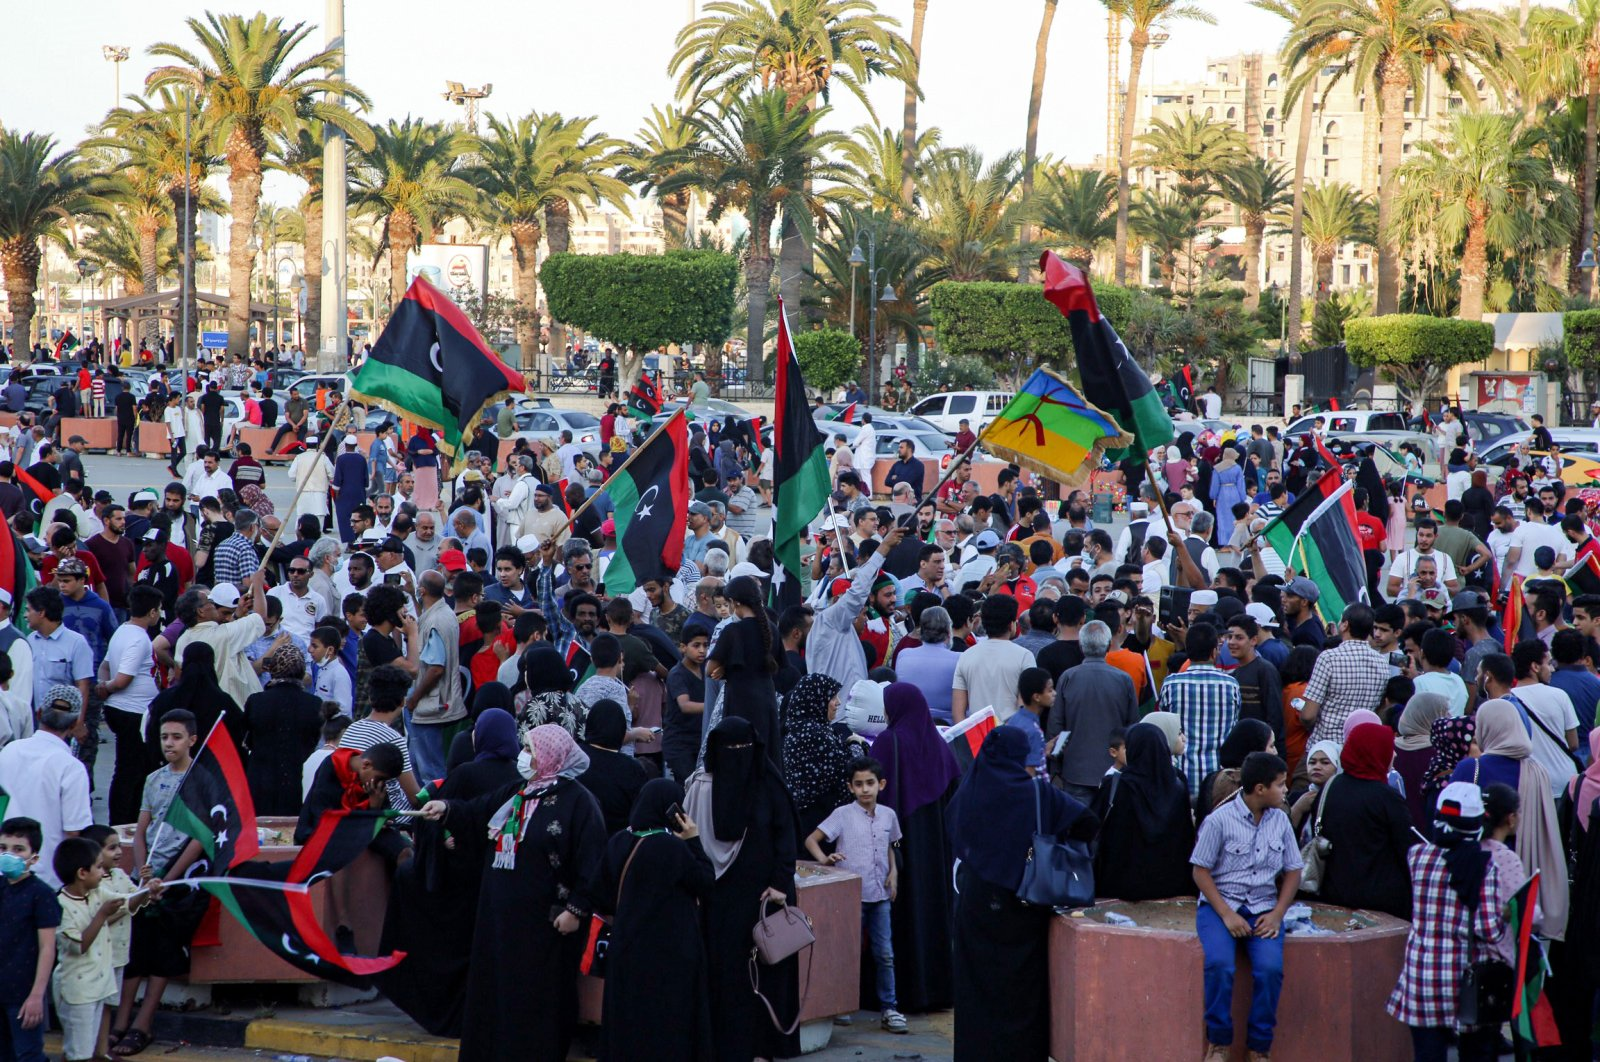 People celebrate with Libyan national flags in the capital Tripoli's Martyrs' Square on June 5, 2020, after fighters loyal to the UN-recognised Government of National Accord (GNA) captured the town of Tarhuna. (AFP Photo)